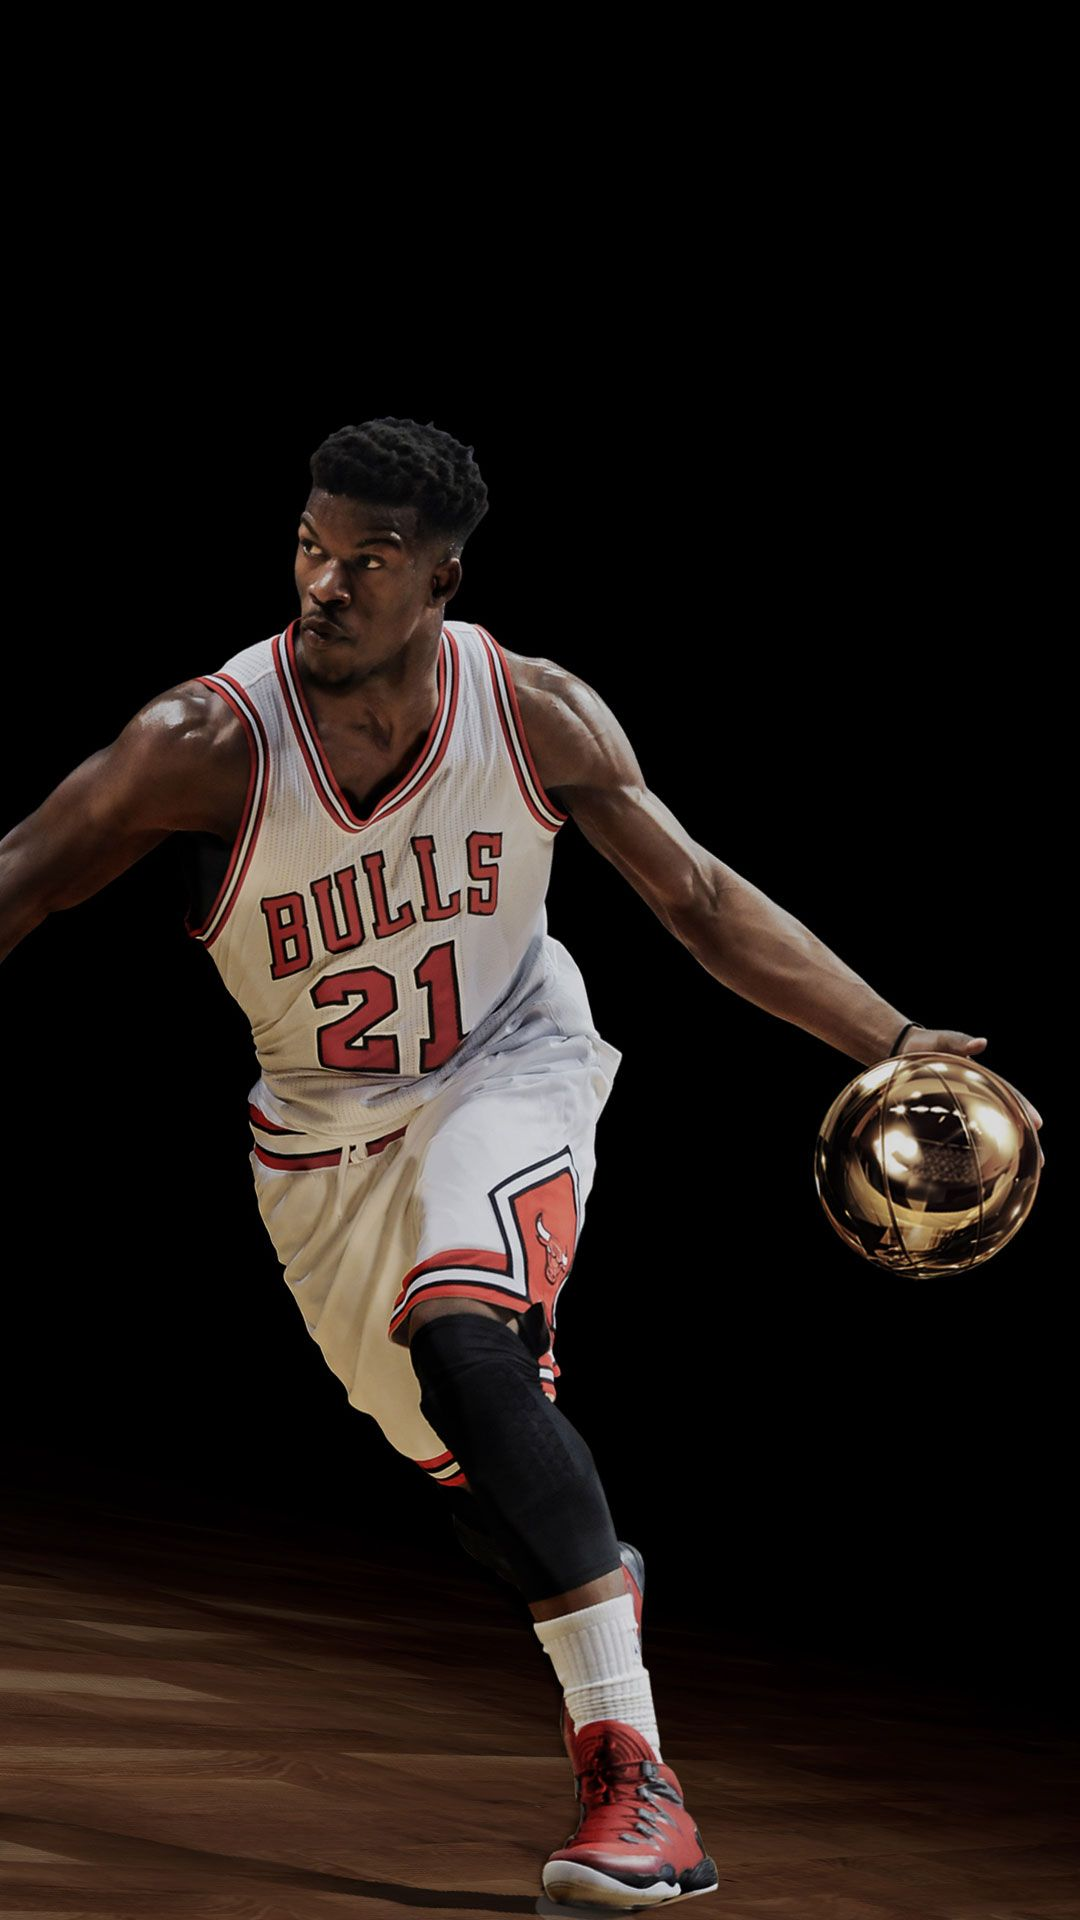 Jimmy Butler Wallpaper For Iphone 6 Plus Hd Wallpaper Iphone Sports Wallpapers Iphone Wallpaper Sports